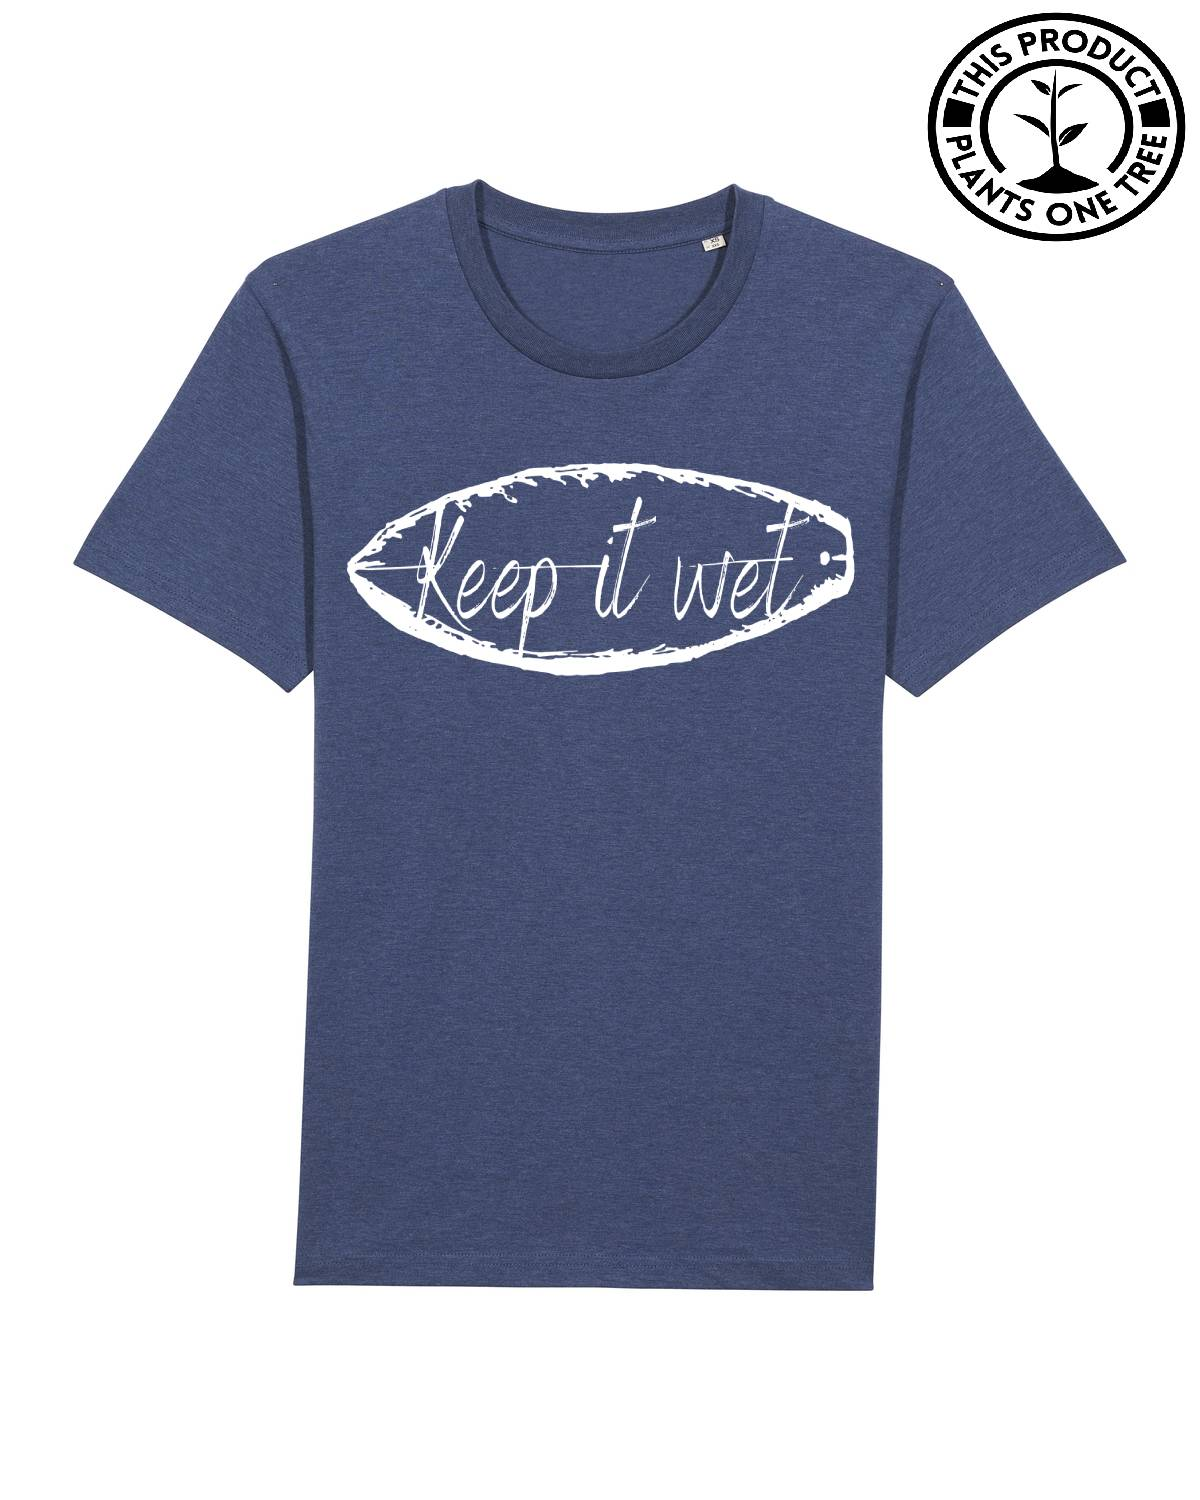 Keep it wet Unisex T-shirt